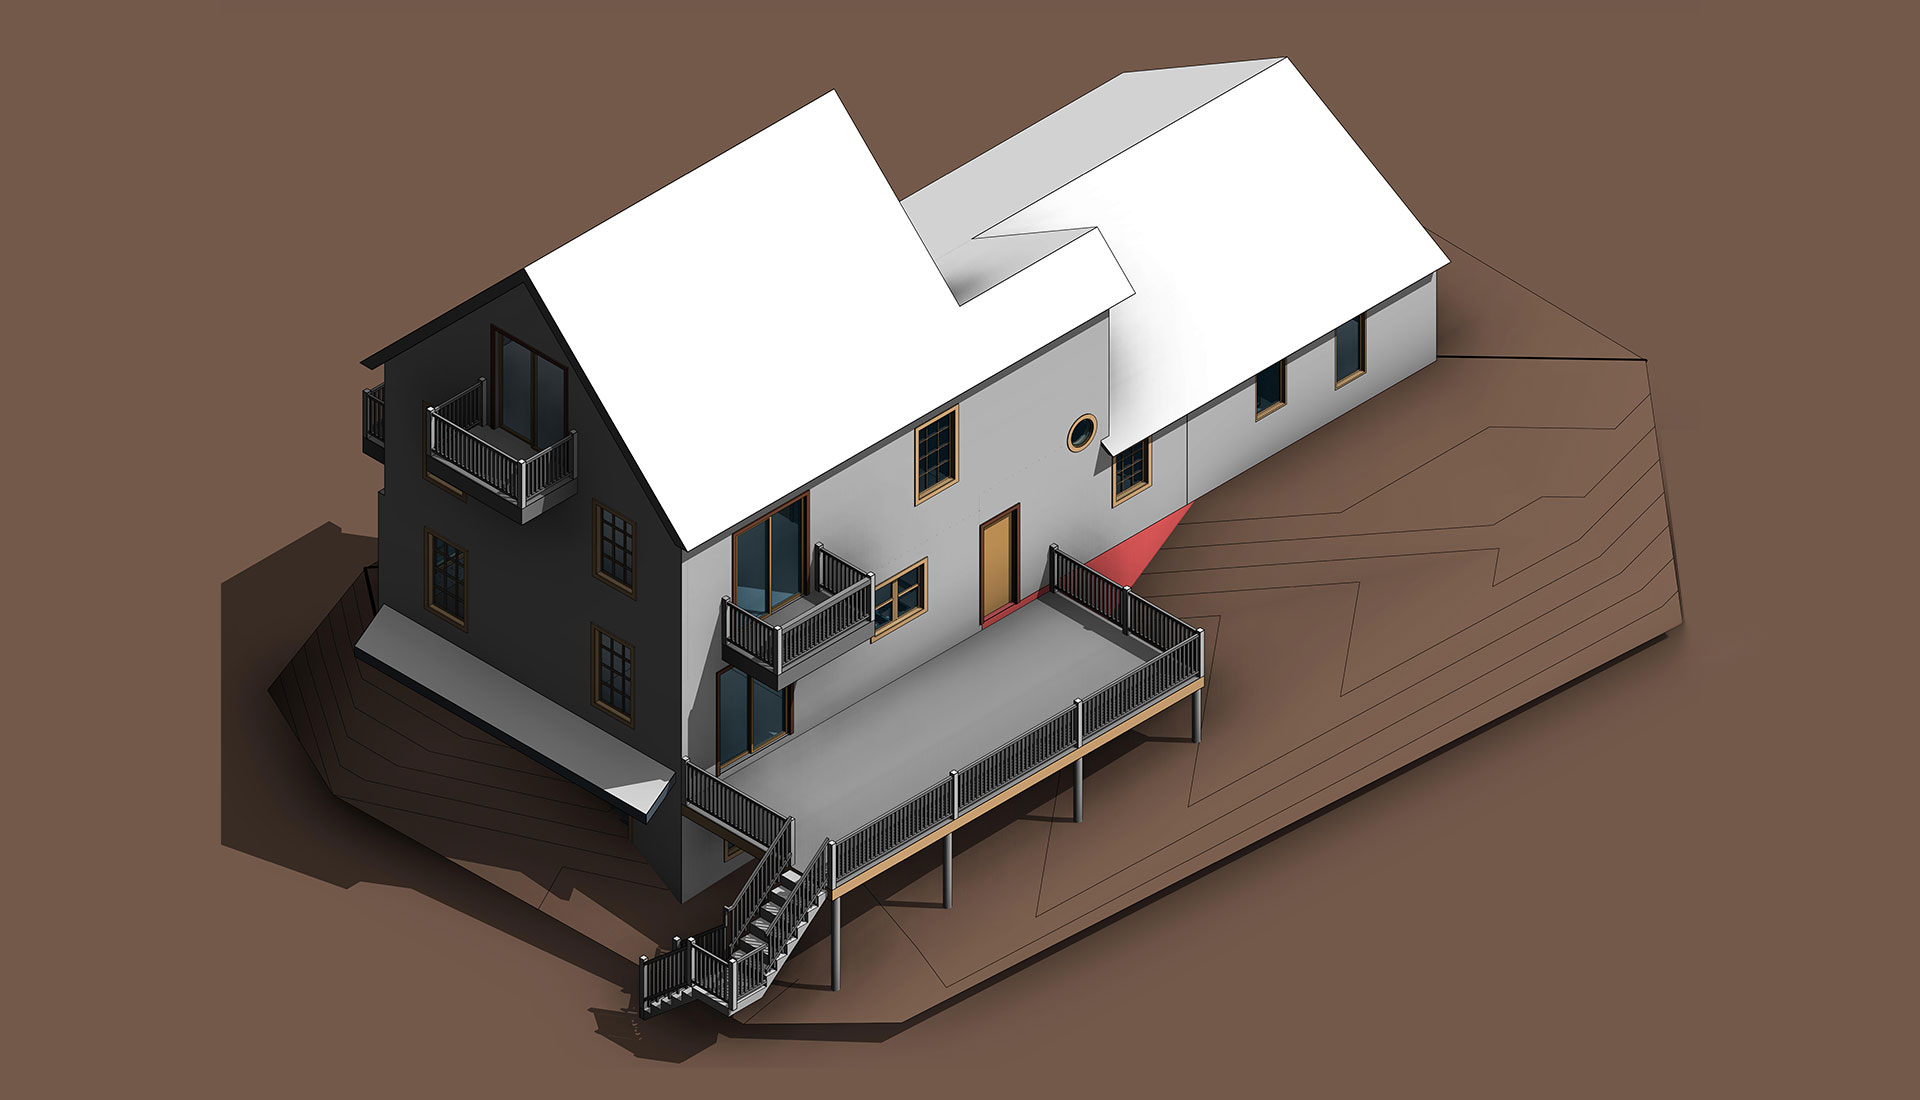 Top-View_Revit-Model-of-Home_Residential-Project-by-United-BIM